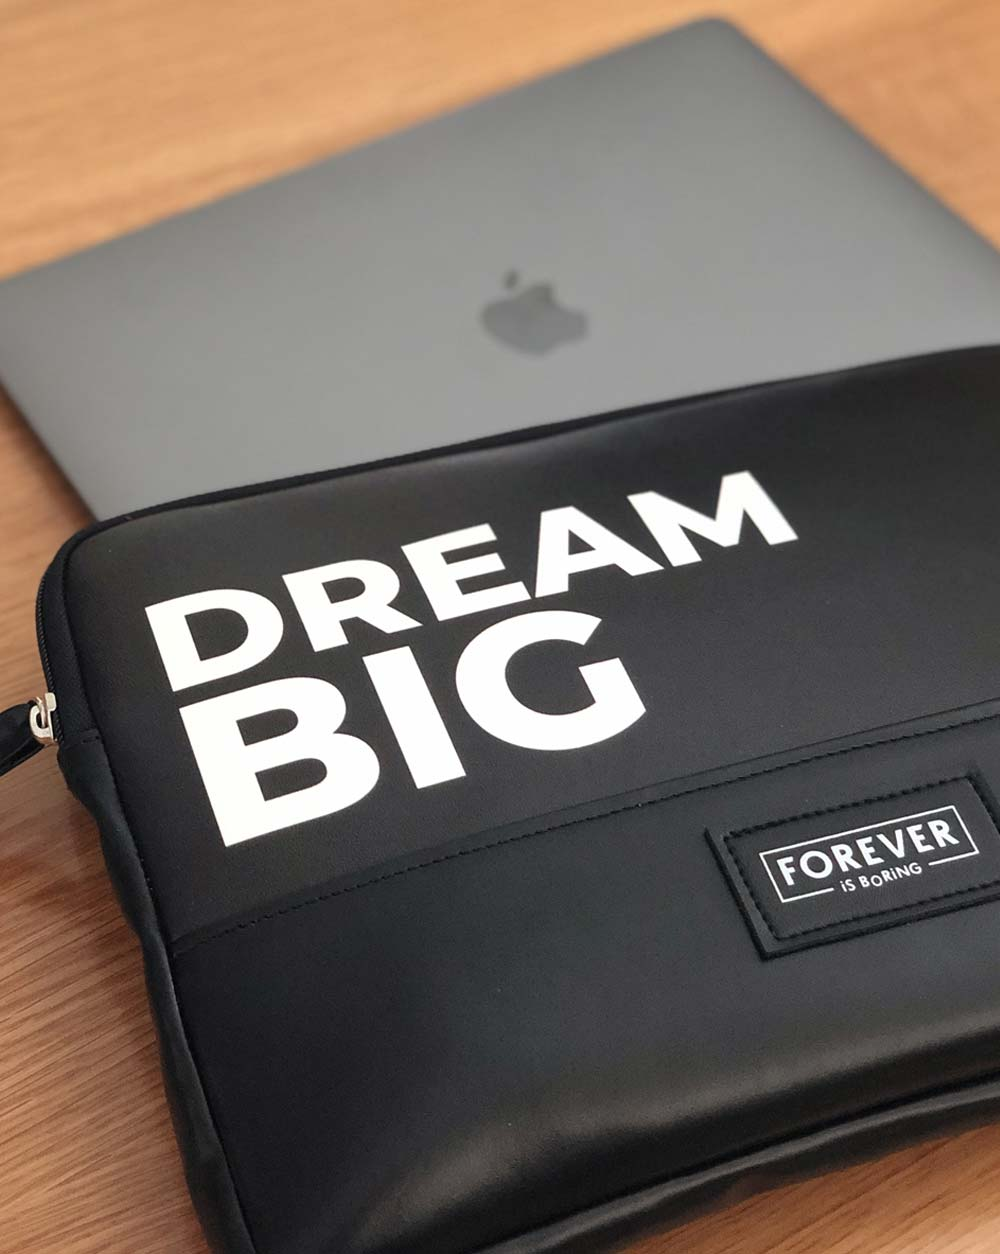 dream big sleeve bolsa portaordenador envios gratis free shipping